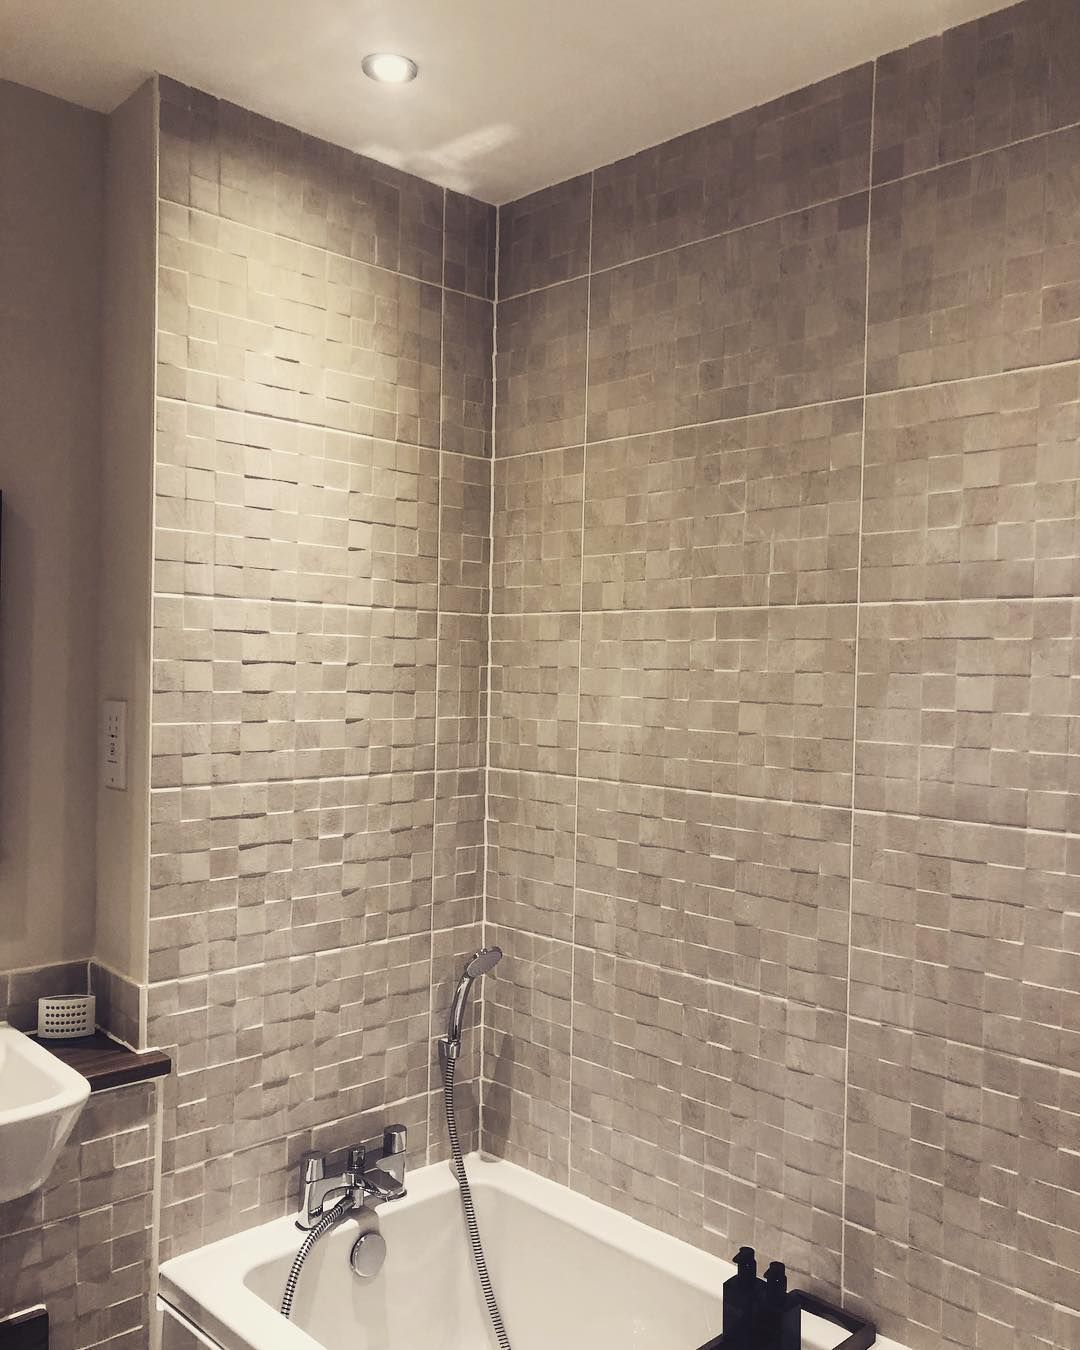 New The 10 Best Home Decor With Pictures Love These Textured Tiles The Clean Light Modern Bathroom Tile Bathroom Tile Inspiration Vintage Bathroom Tile